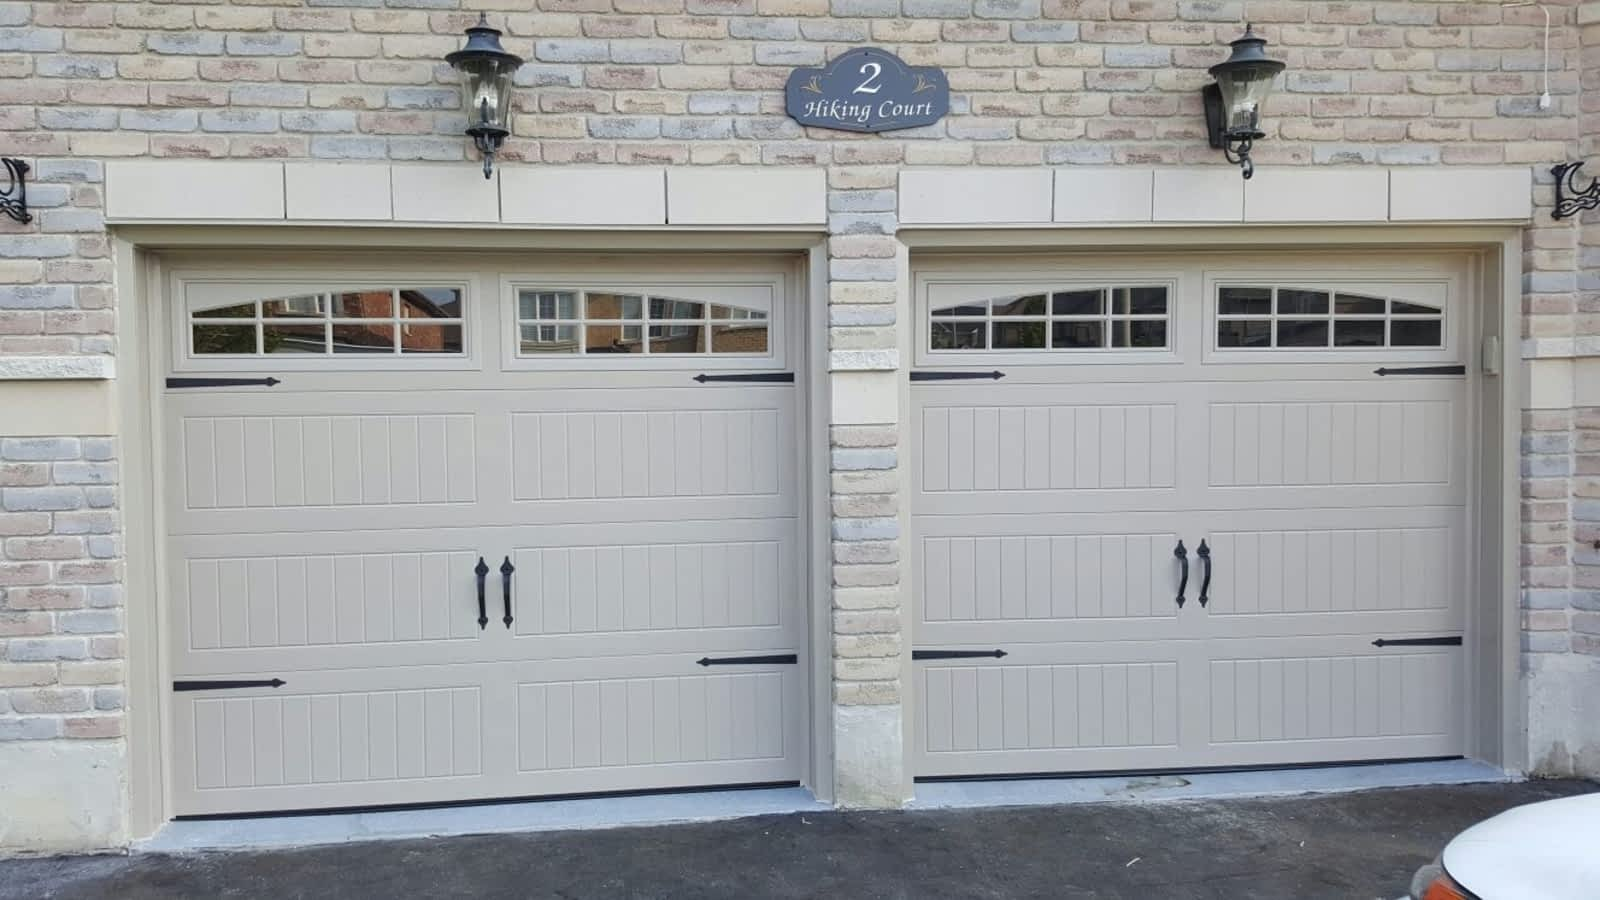 Gallery door inc garage door ironmongery image collections doors garage doors inc gallery doors design ideas moga garage doors inc opening hours 25 estateview cir rubansaba